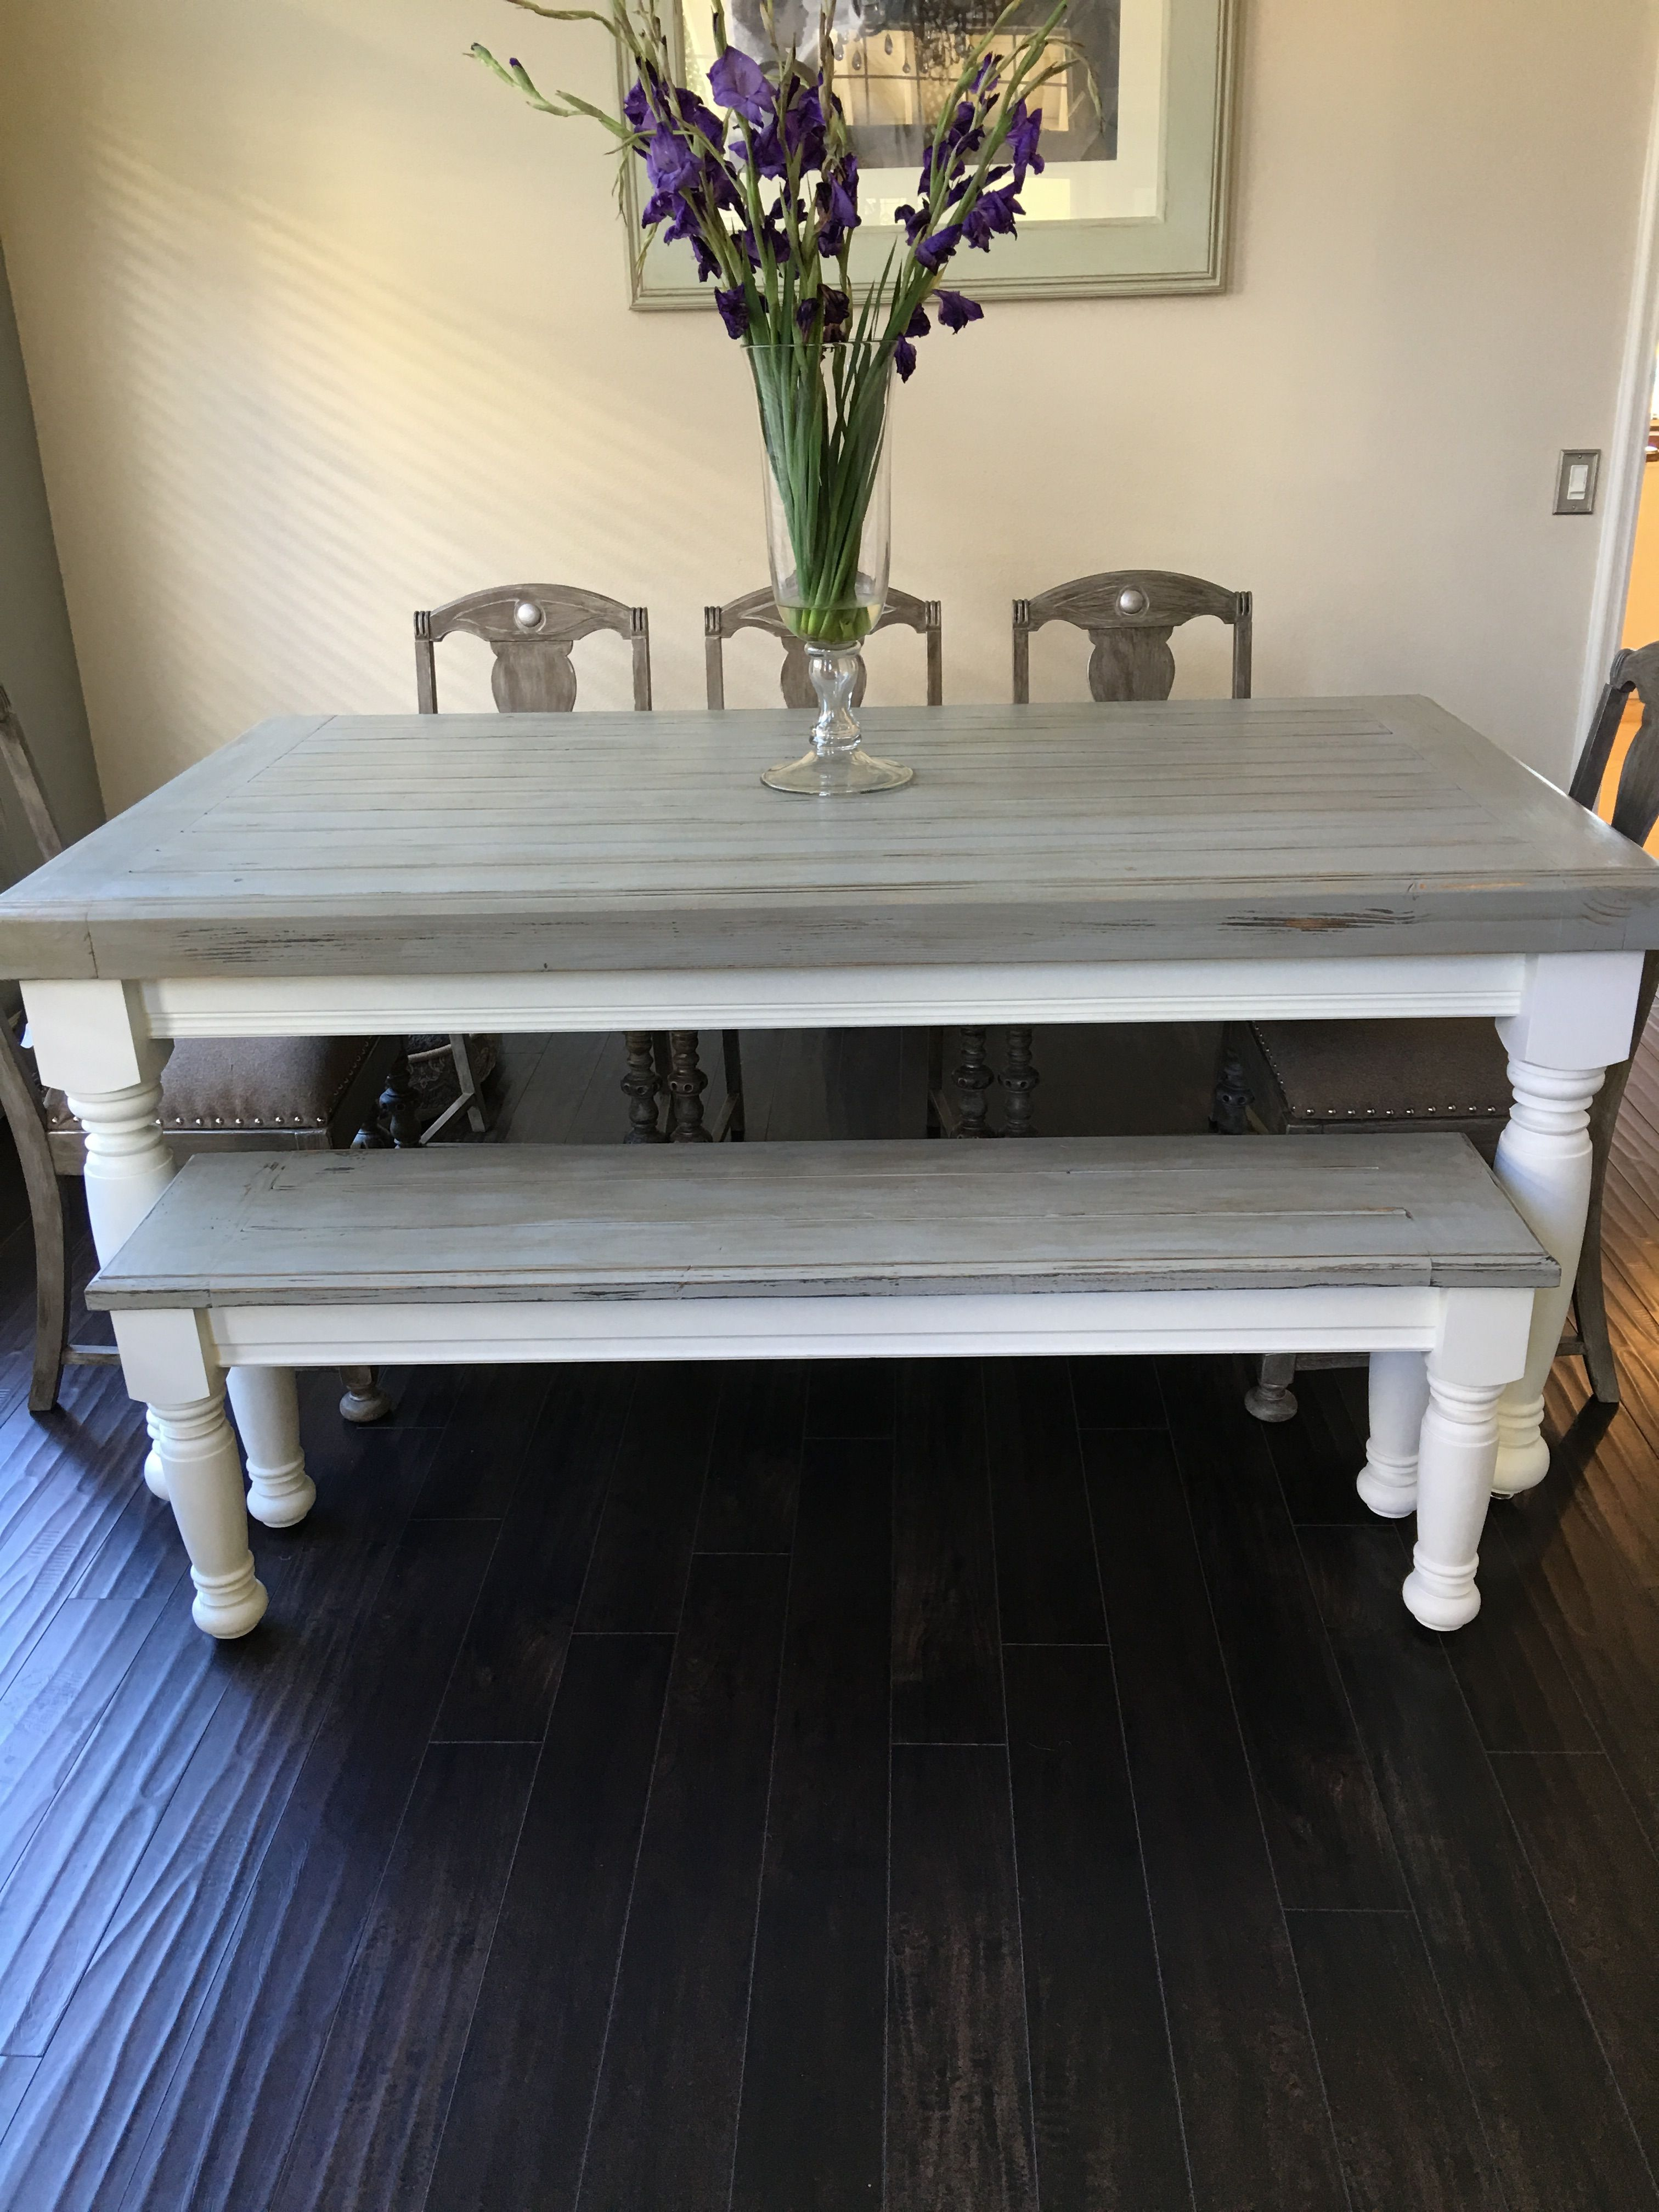 Farmhouse Table With Light Grey Base And Distressed Dark Grey Top 4x4 S And 4x6 S Were Used To Bu Farmhouse Dining Room Refurbished Table Dinning Room Tables